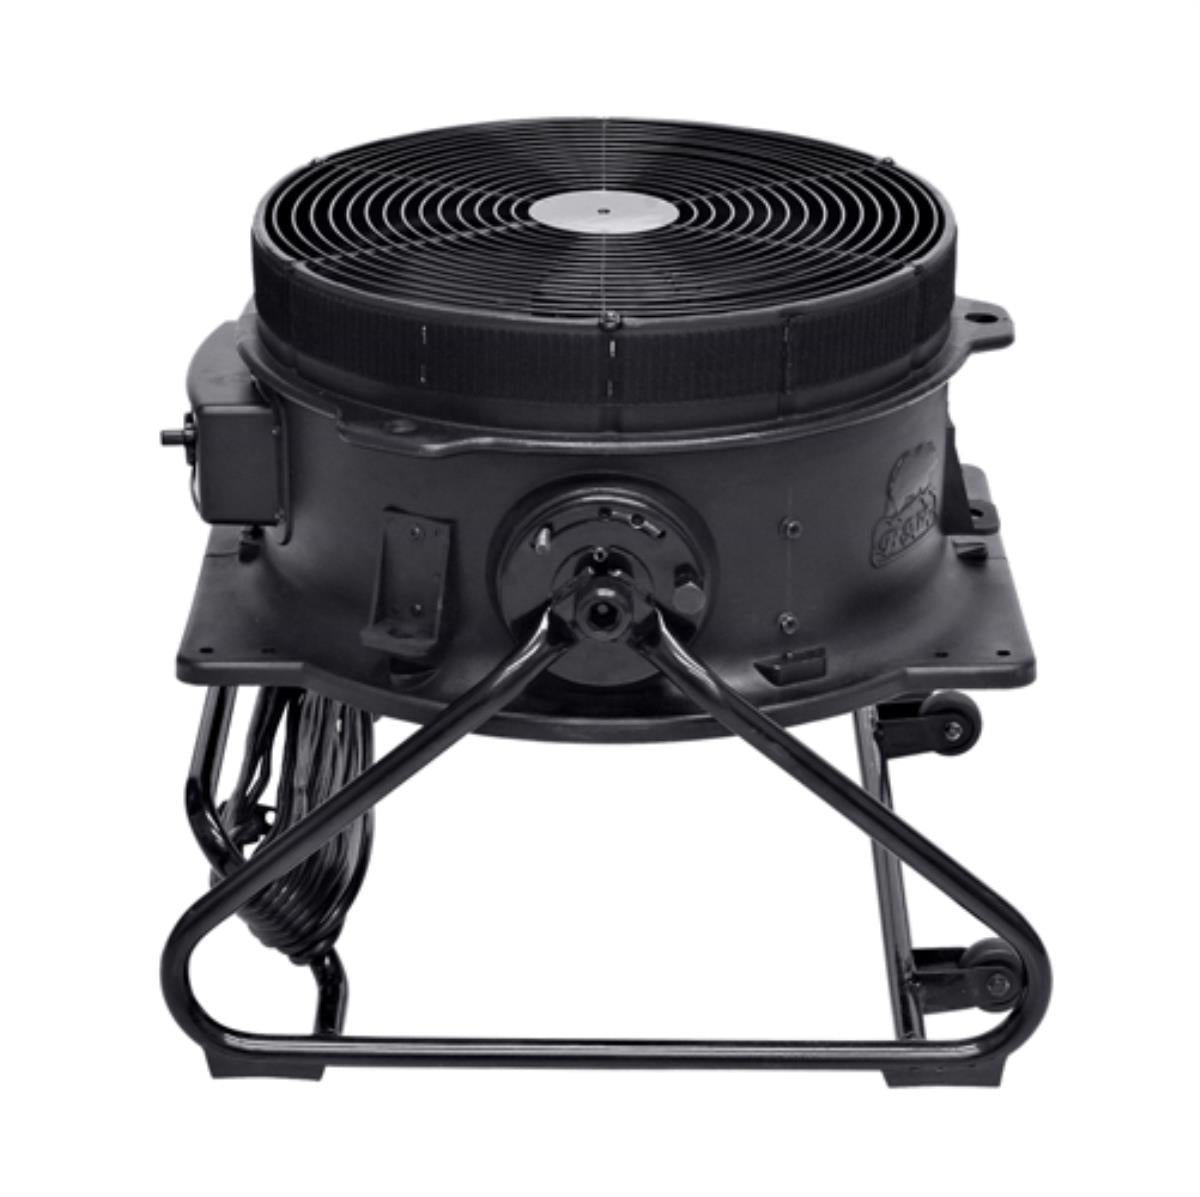 B-Air 3/4 HP Big Bear Vortex BB-1 Blower Fan